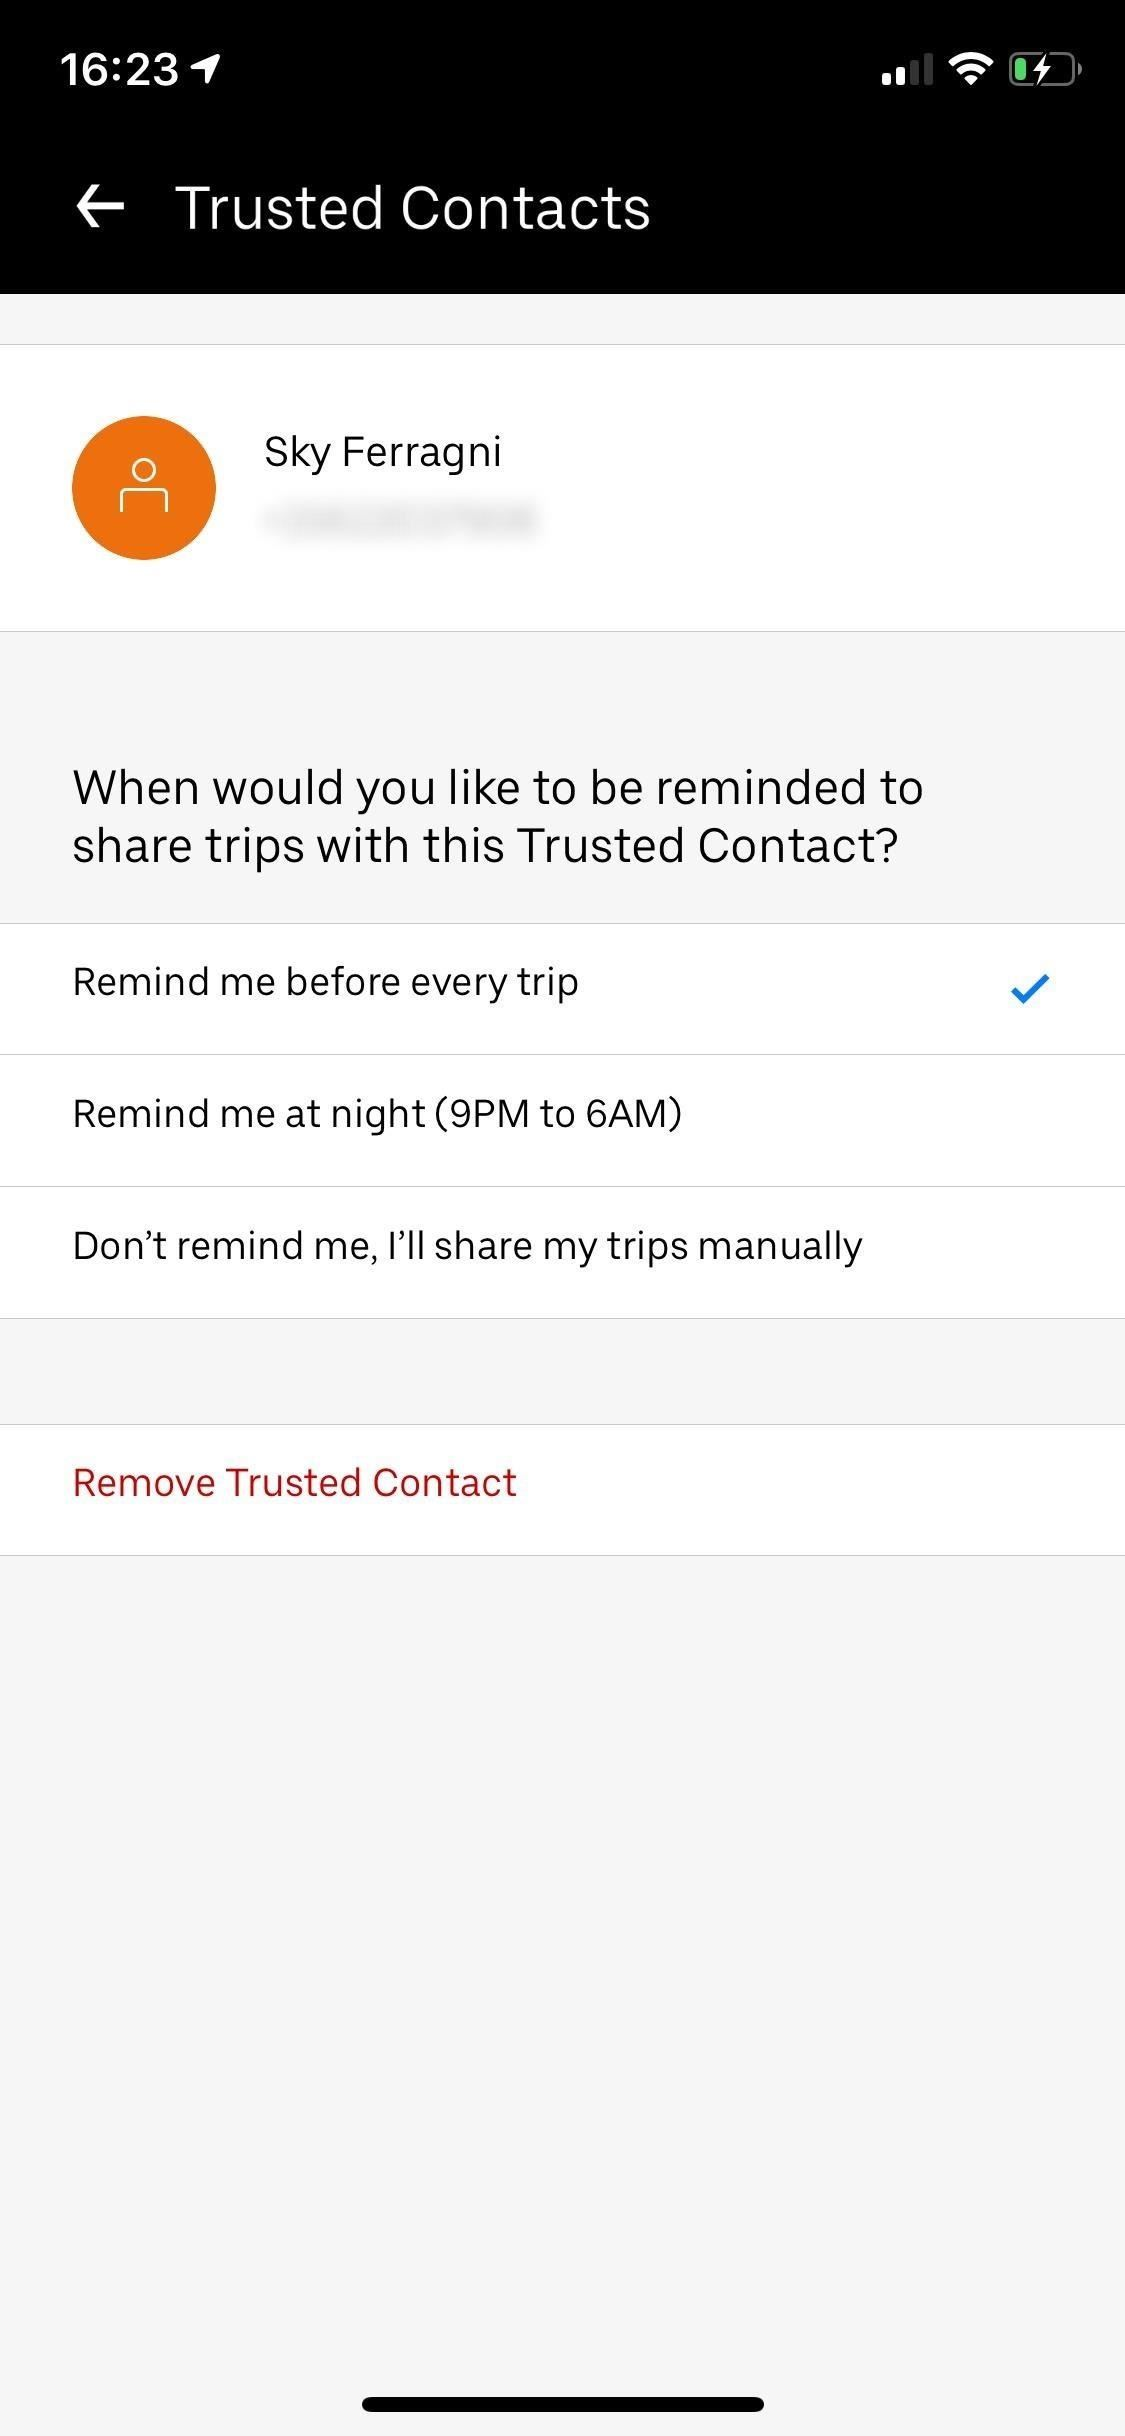 How to Send Your Uber Trip Status to Trusted Contacts if You're Ever in a Sketchy Situation